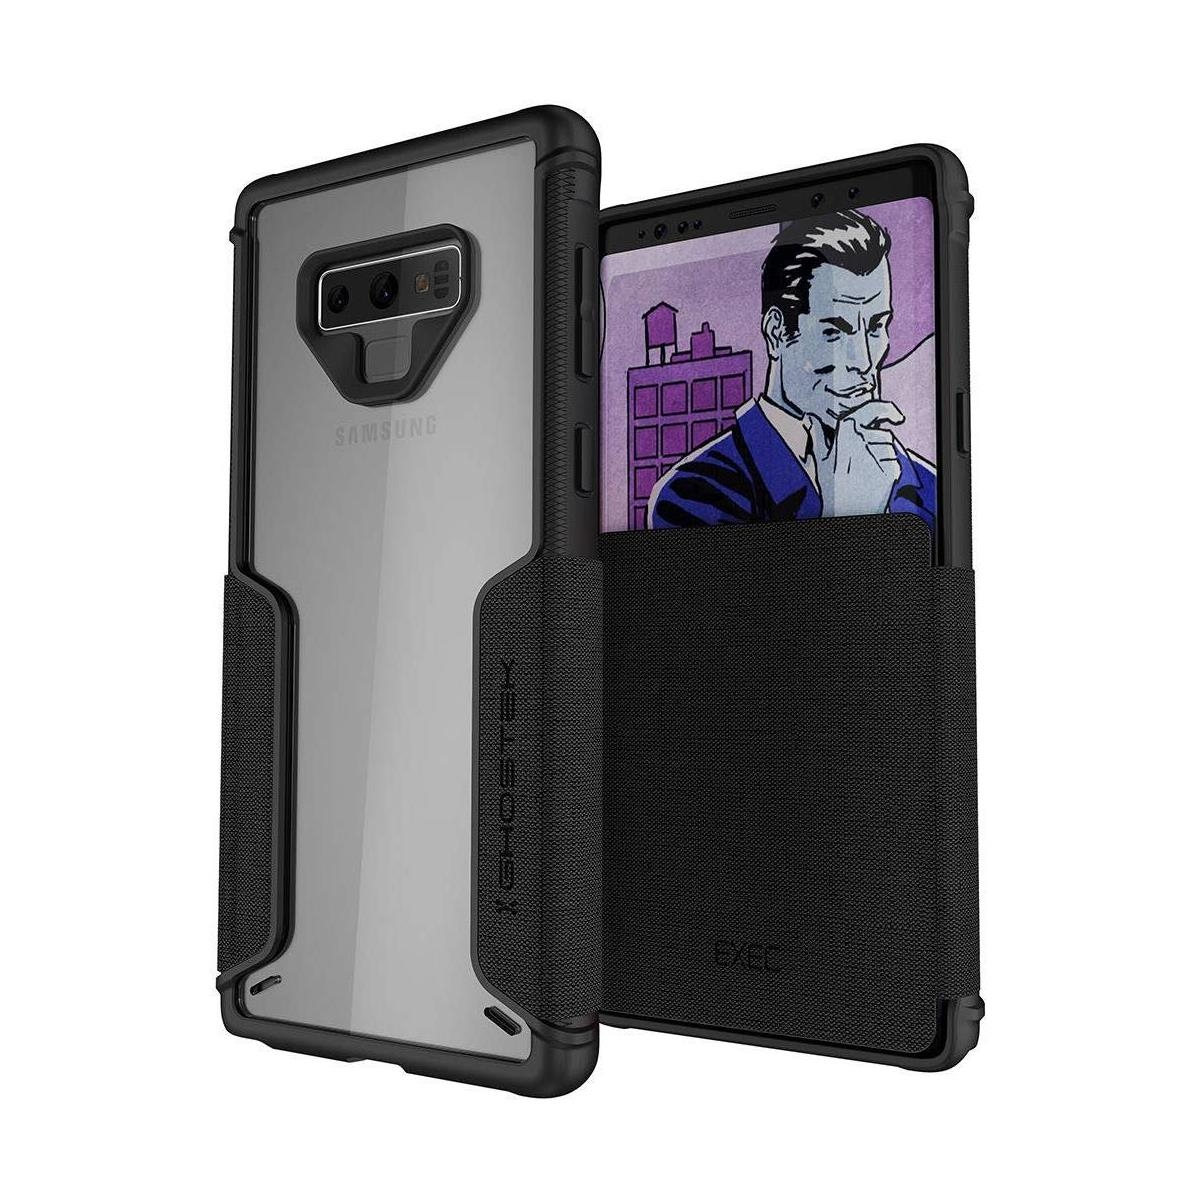 Ghostek Exec 3 - Θήκη Πορτοφόλι Samsung Galaxy Note 9 - Black (GHOCAS996)